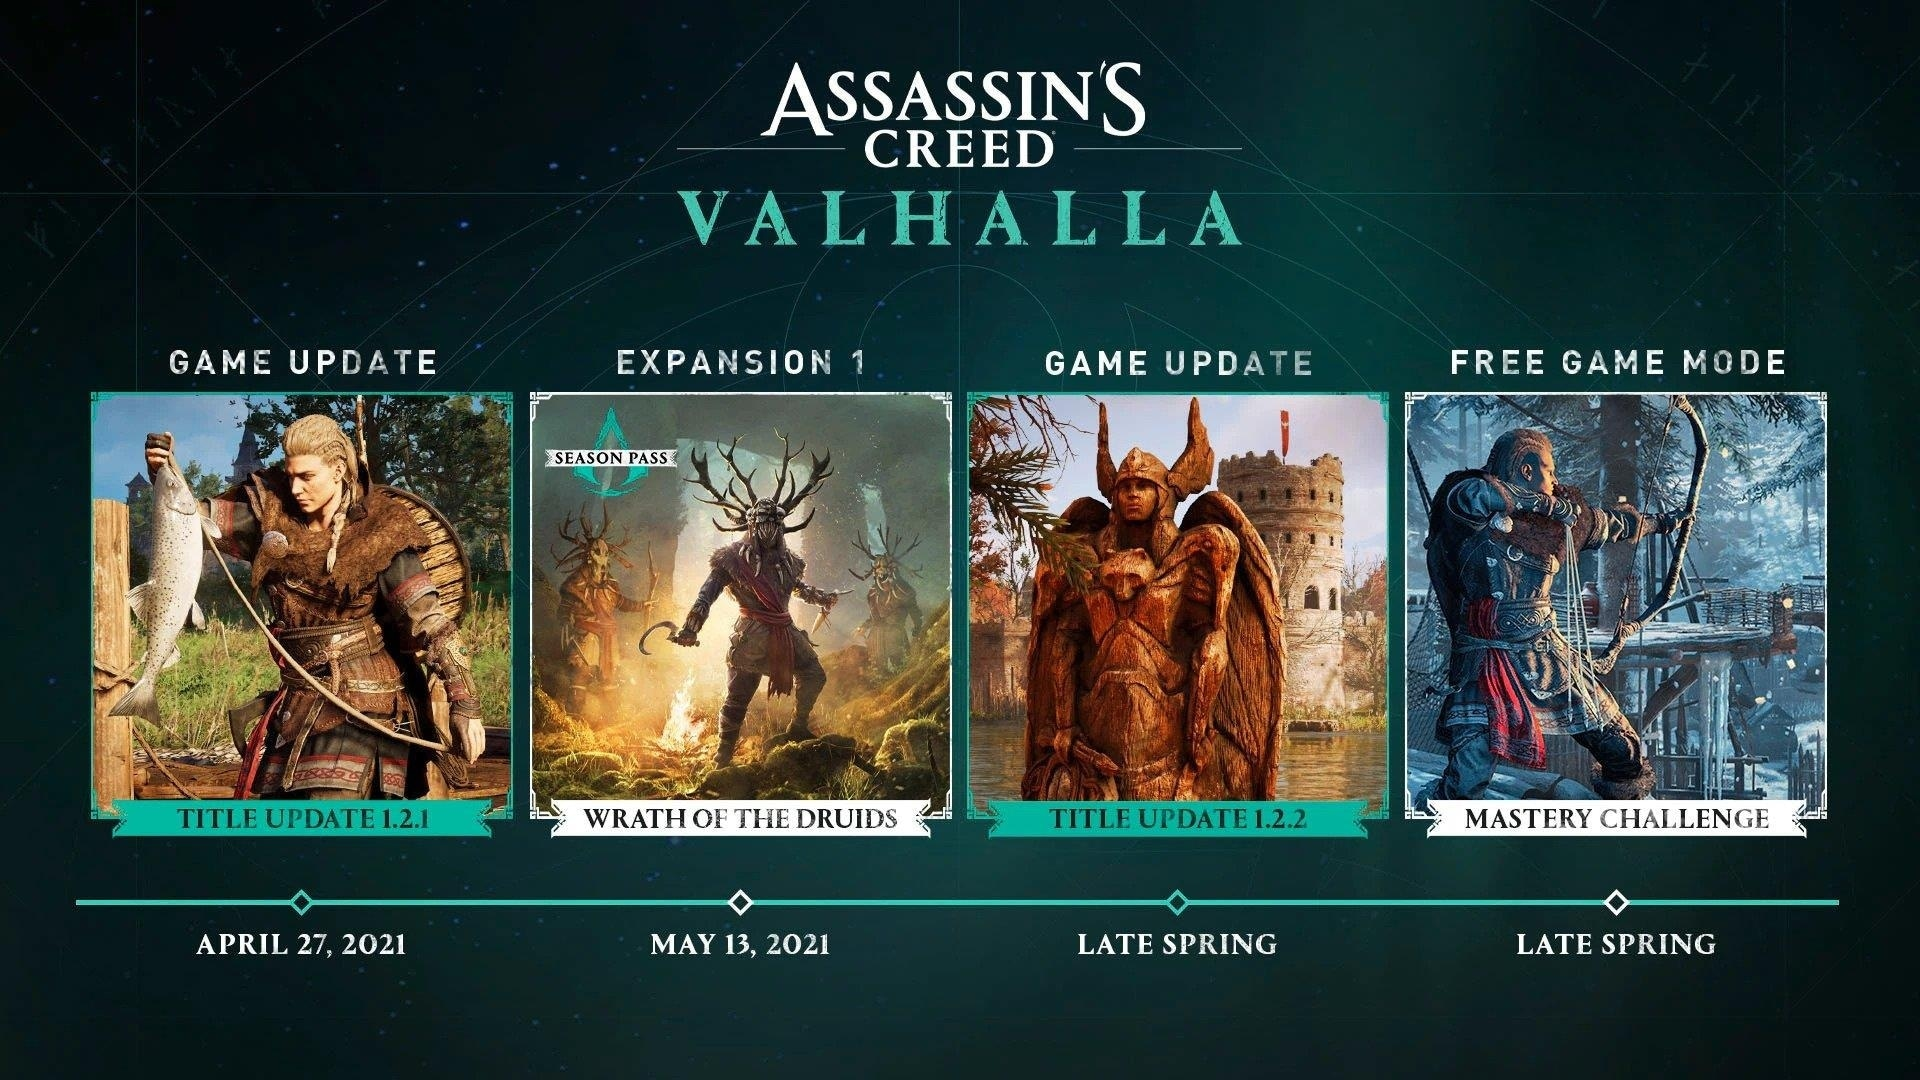 Assassin's Creed Valhalla title update roadmap